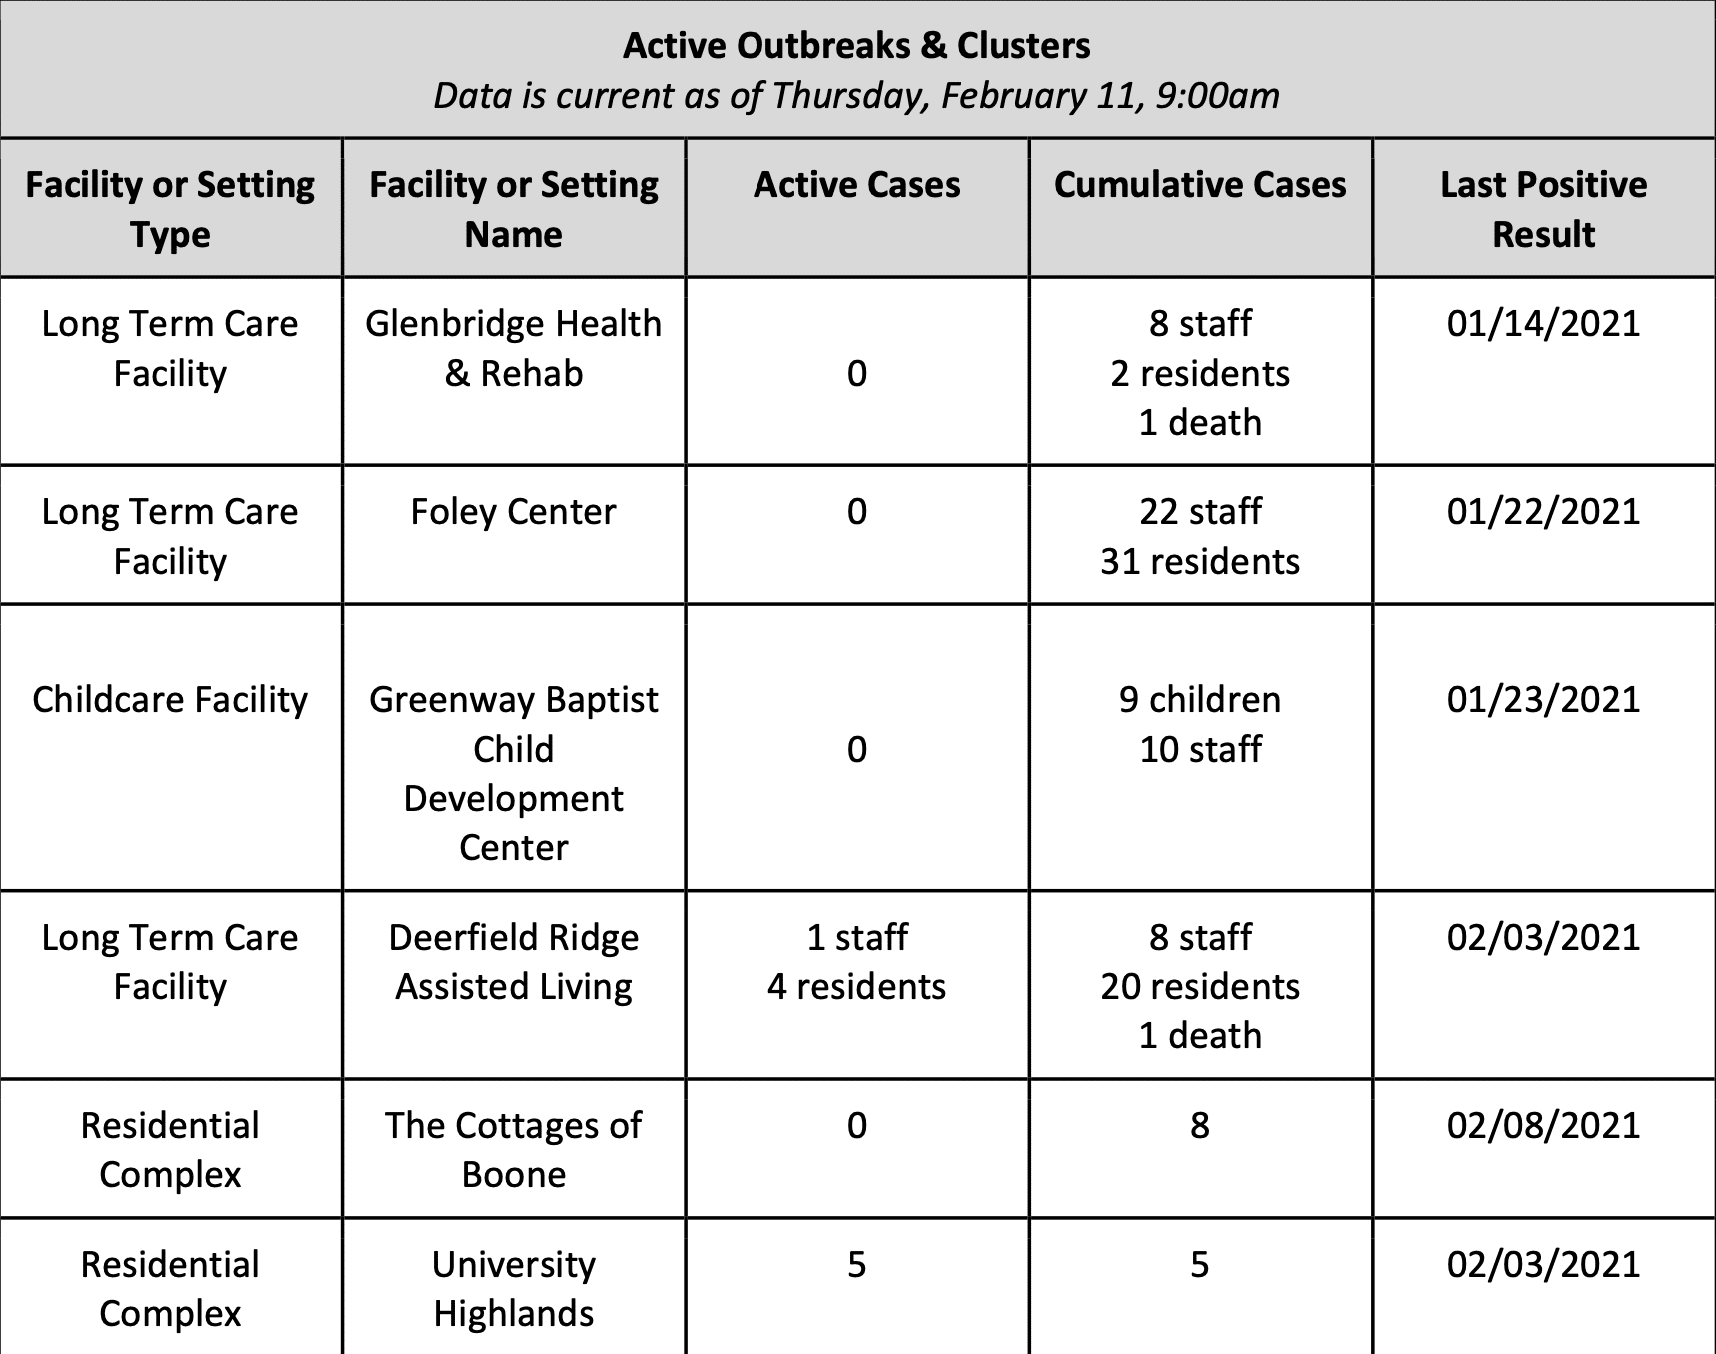 Sunday February 14, 2021 - Appalachian State, Watauga, Alleghany & Ashe COVID-19 Cases Data